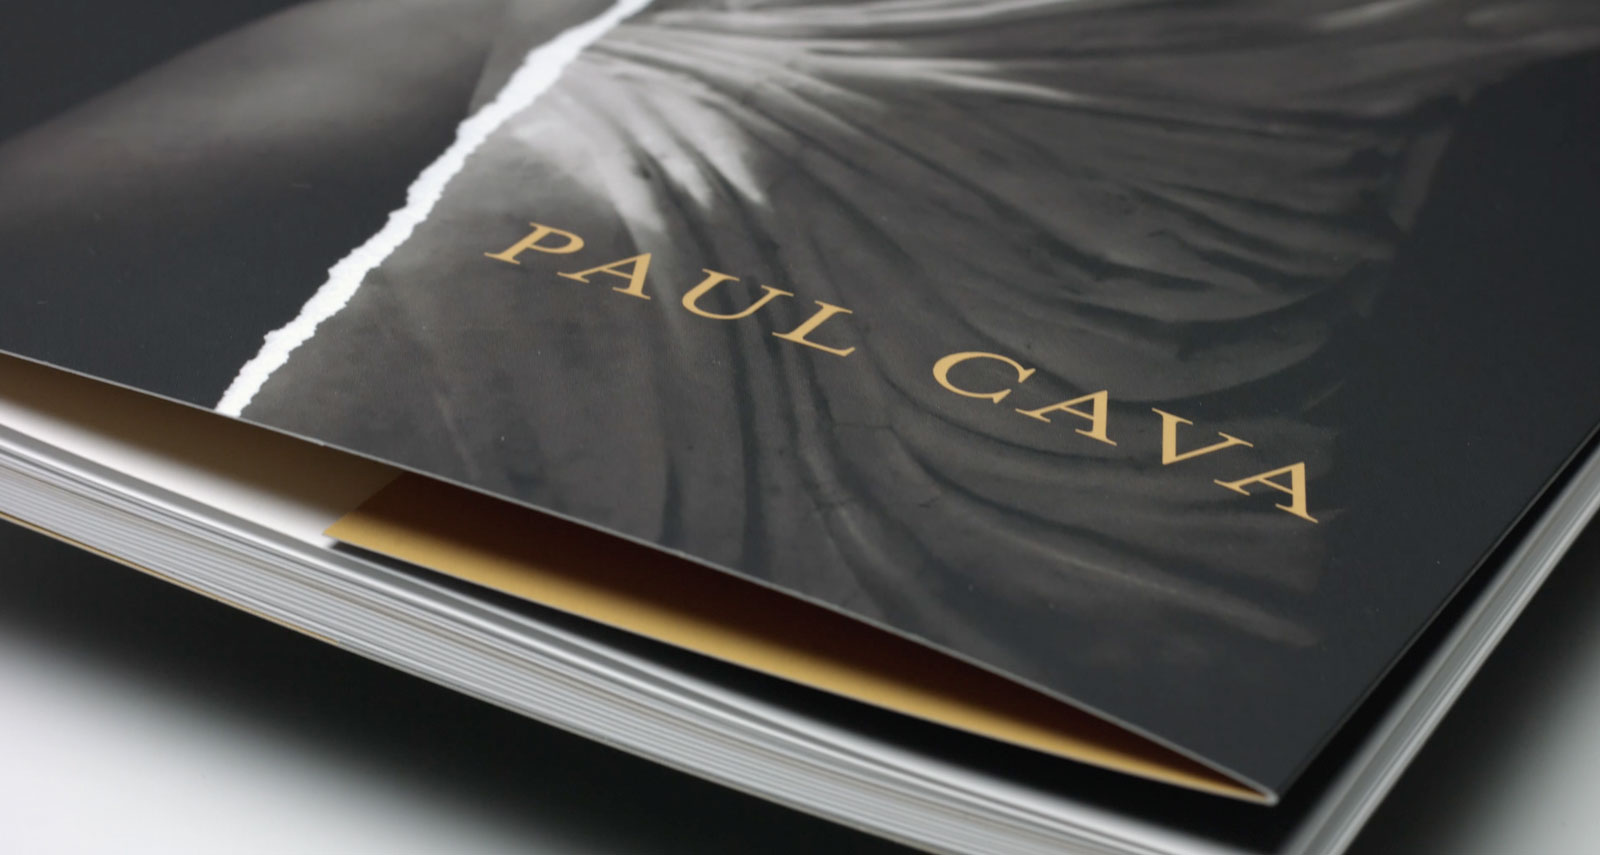 New book release by PAUL CAVA